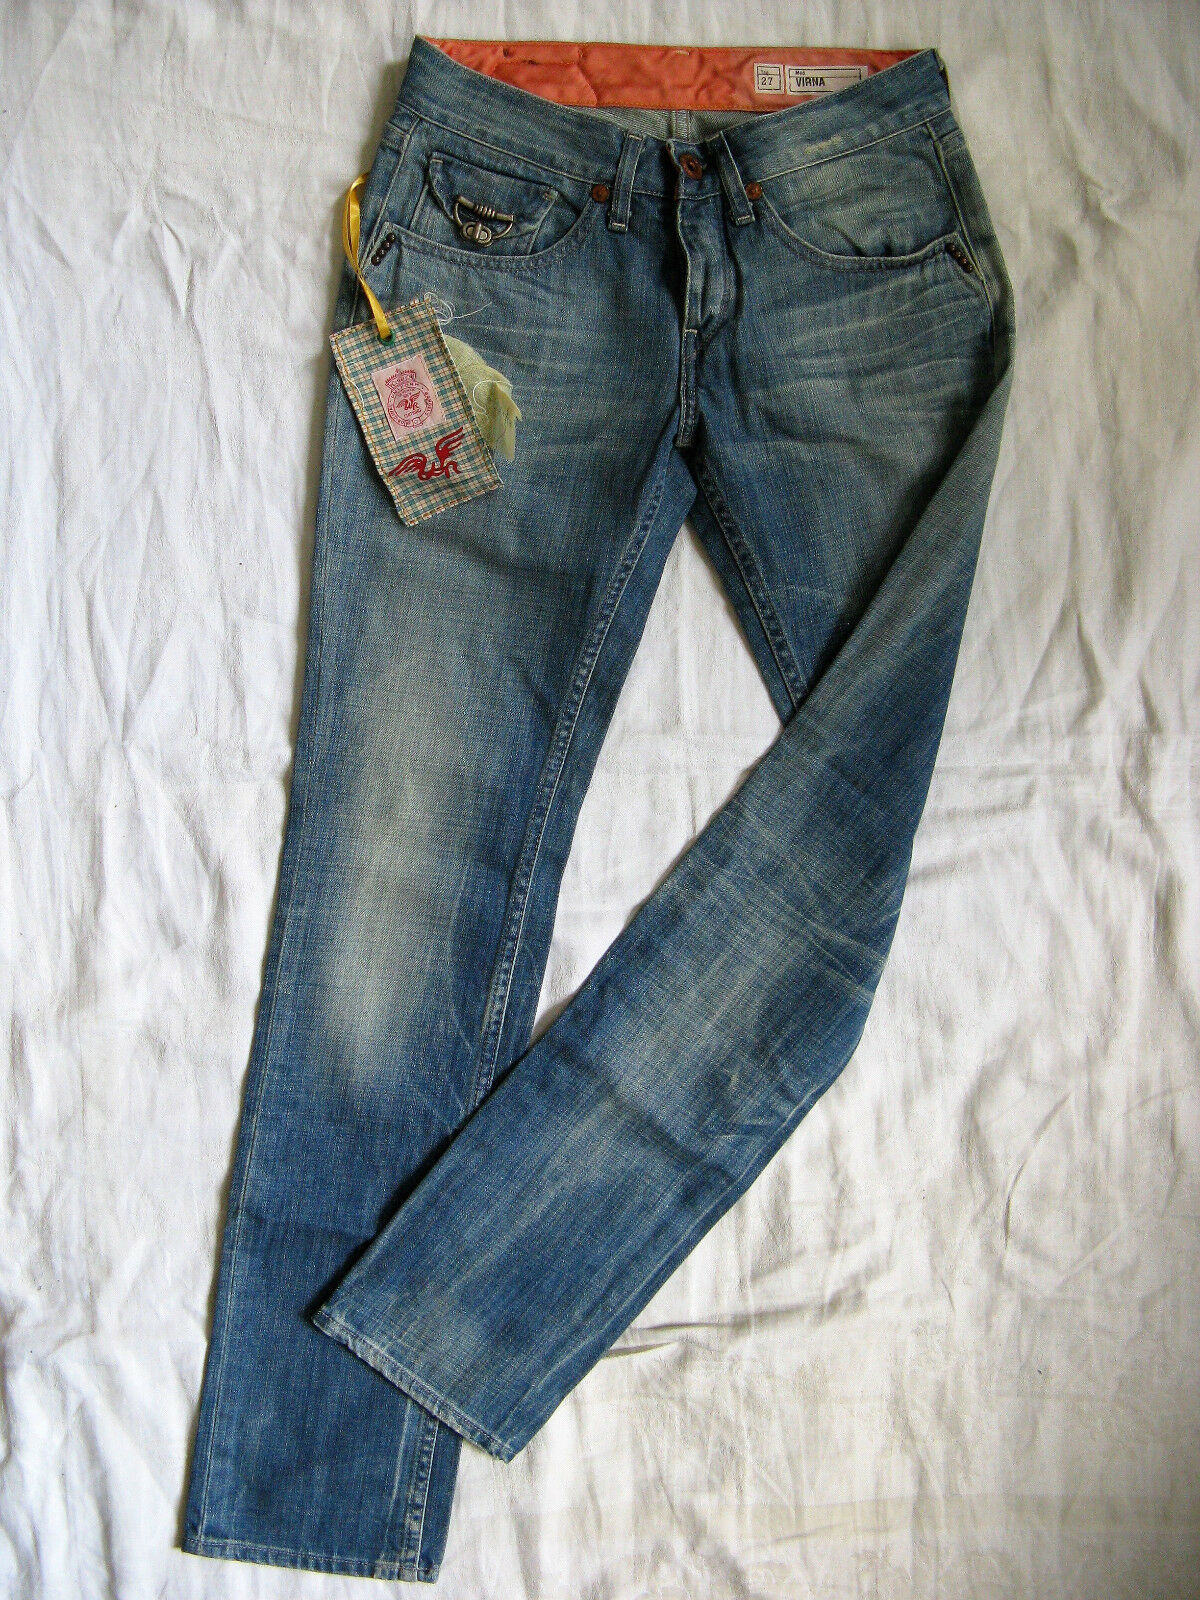 We Are Replay Damen Blau Jeans Denim W27 L32 low waist slim fit straight leg